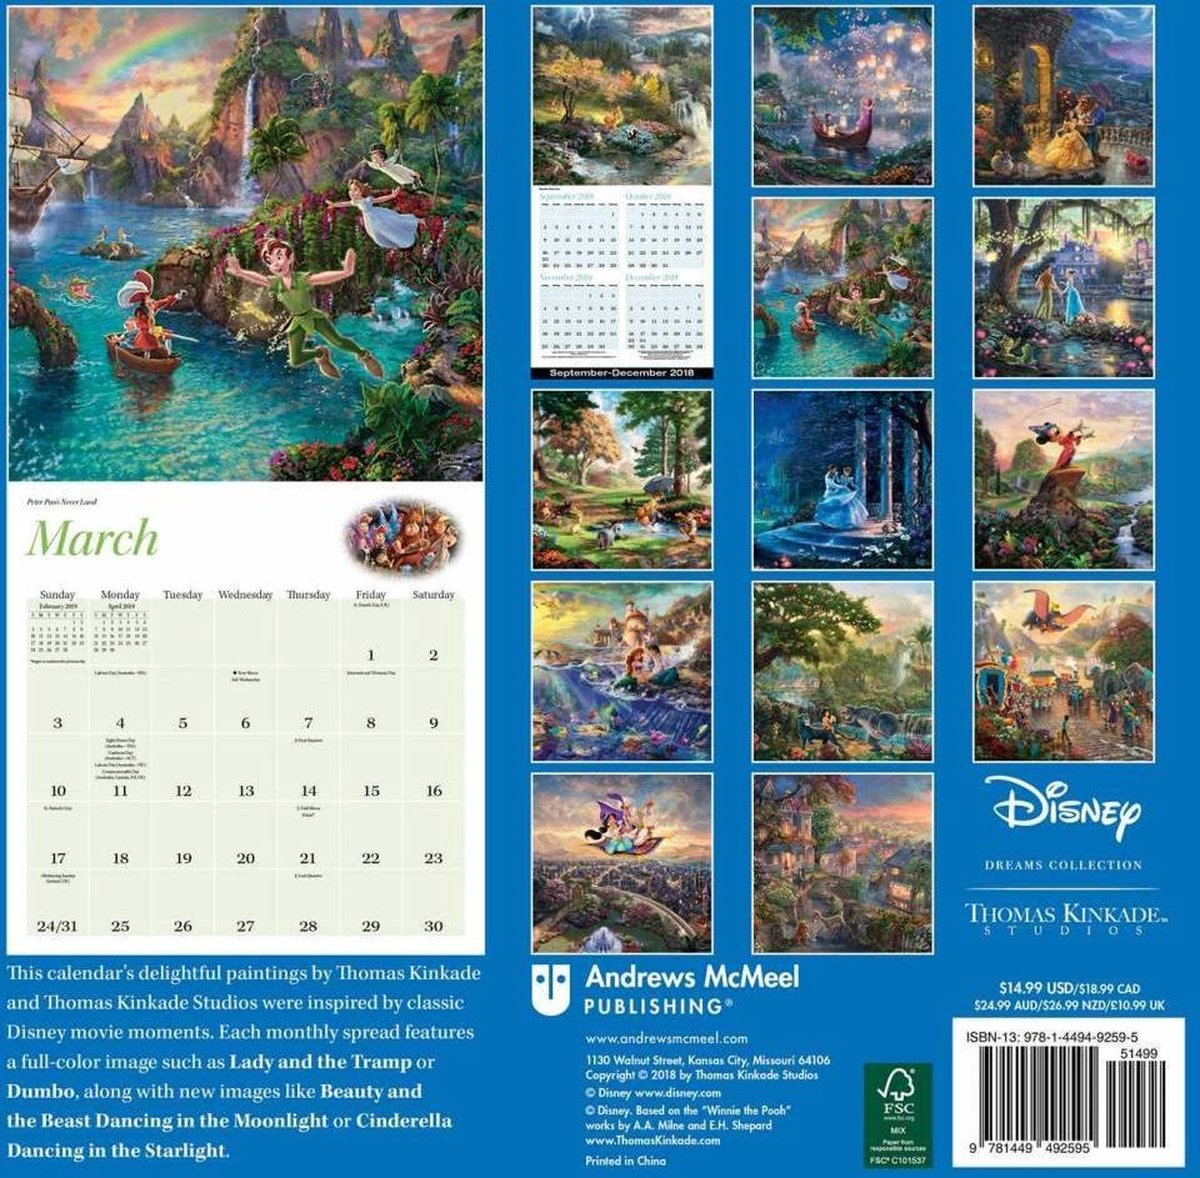 Thomas Kinkade Disney Dreams Kalender 2019 - Kinkade, Thomas